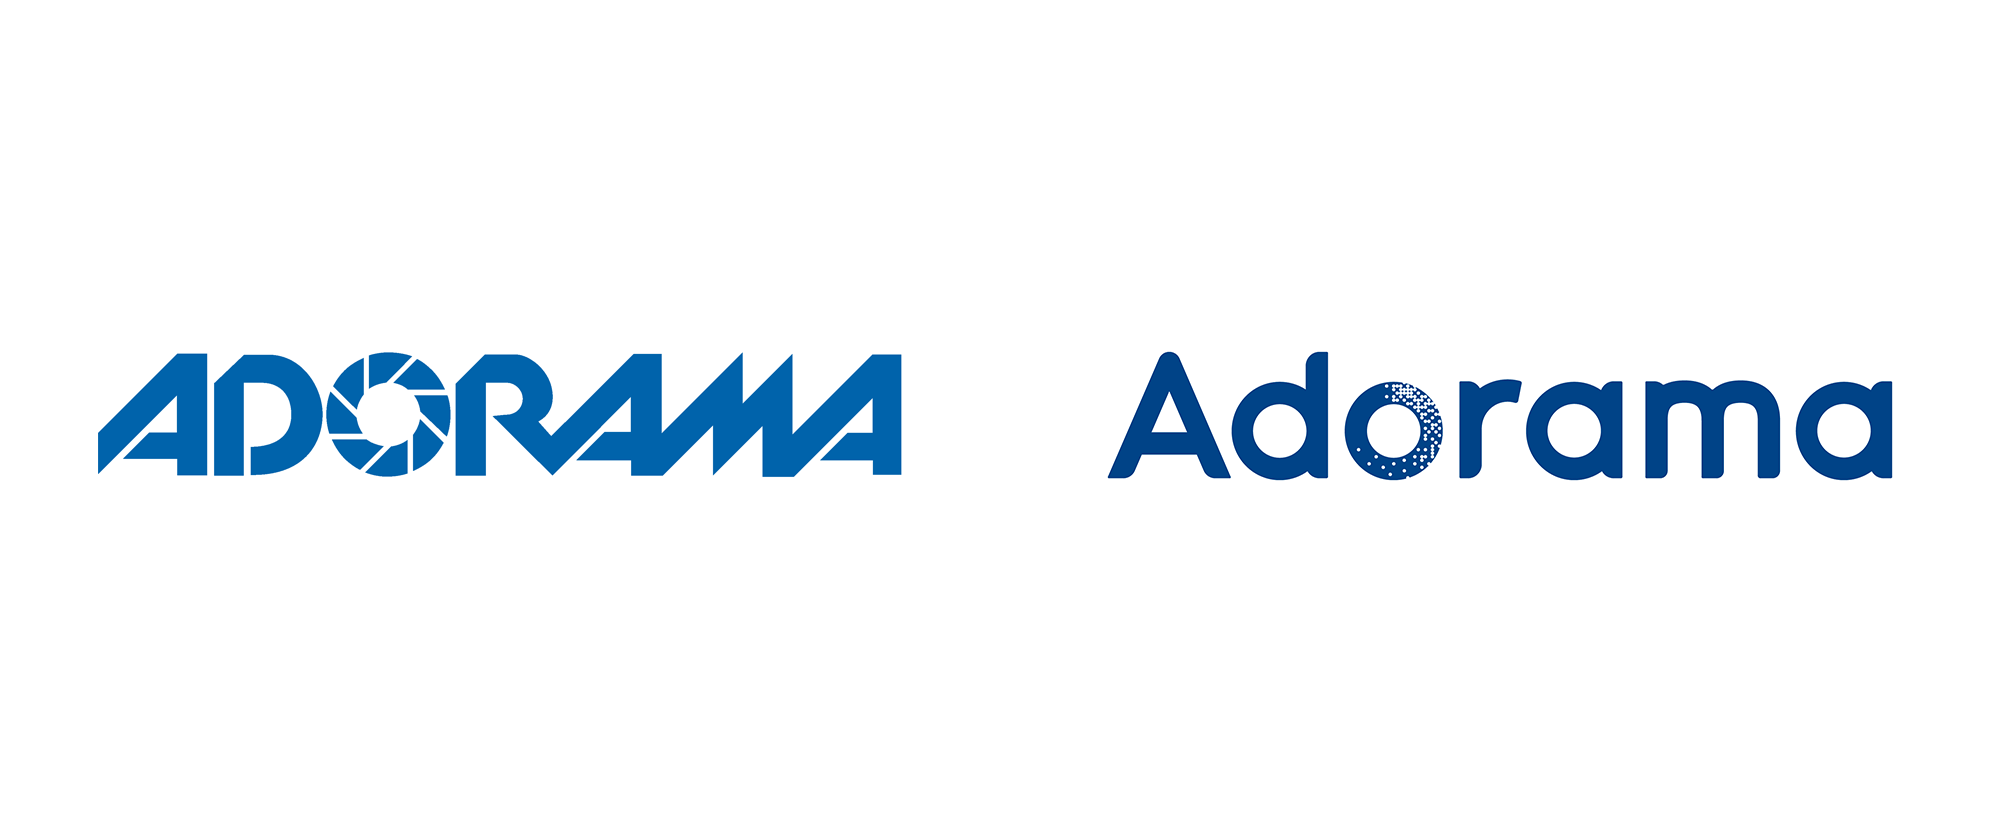 New Logo for Adorama